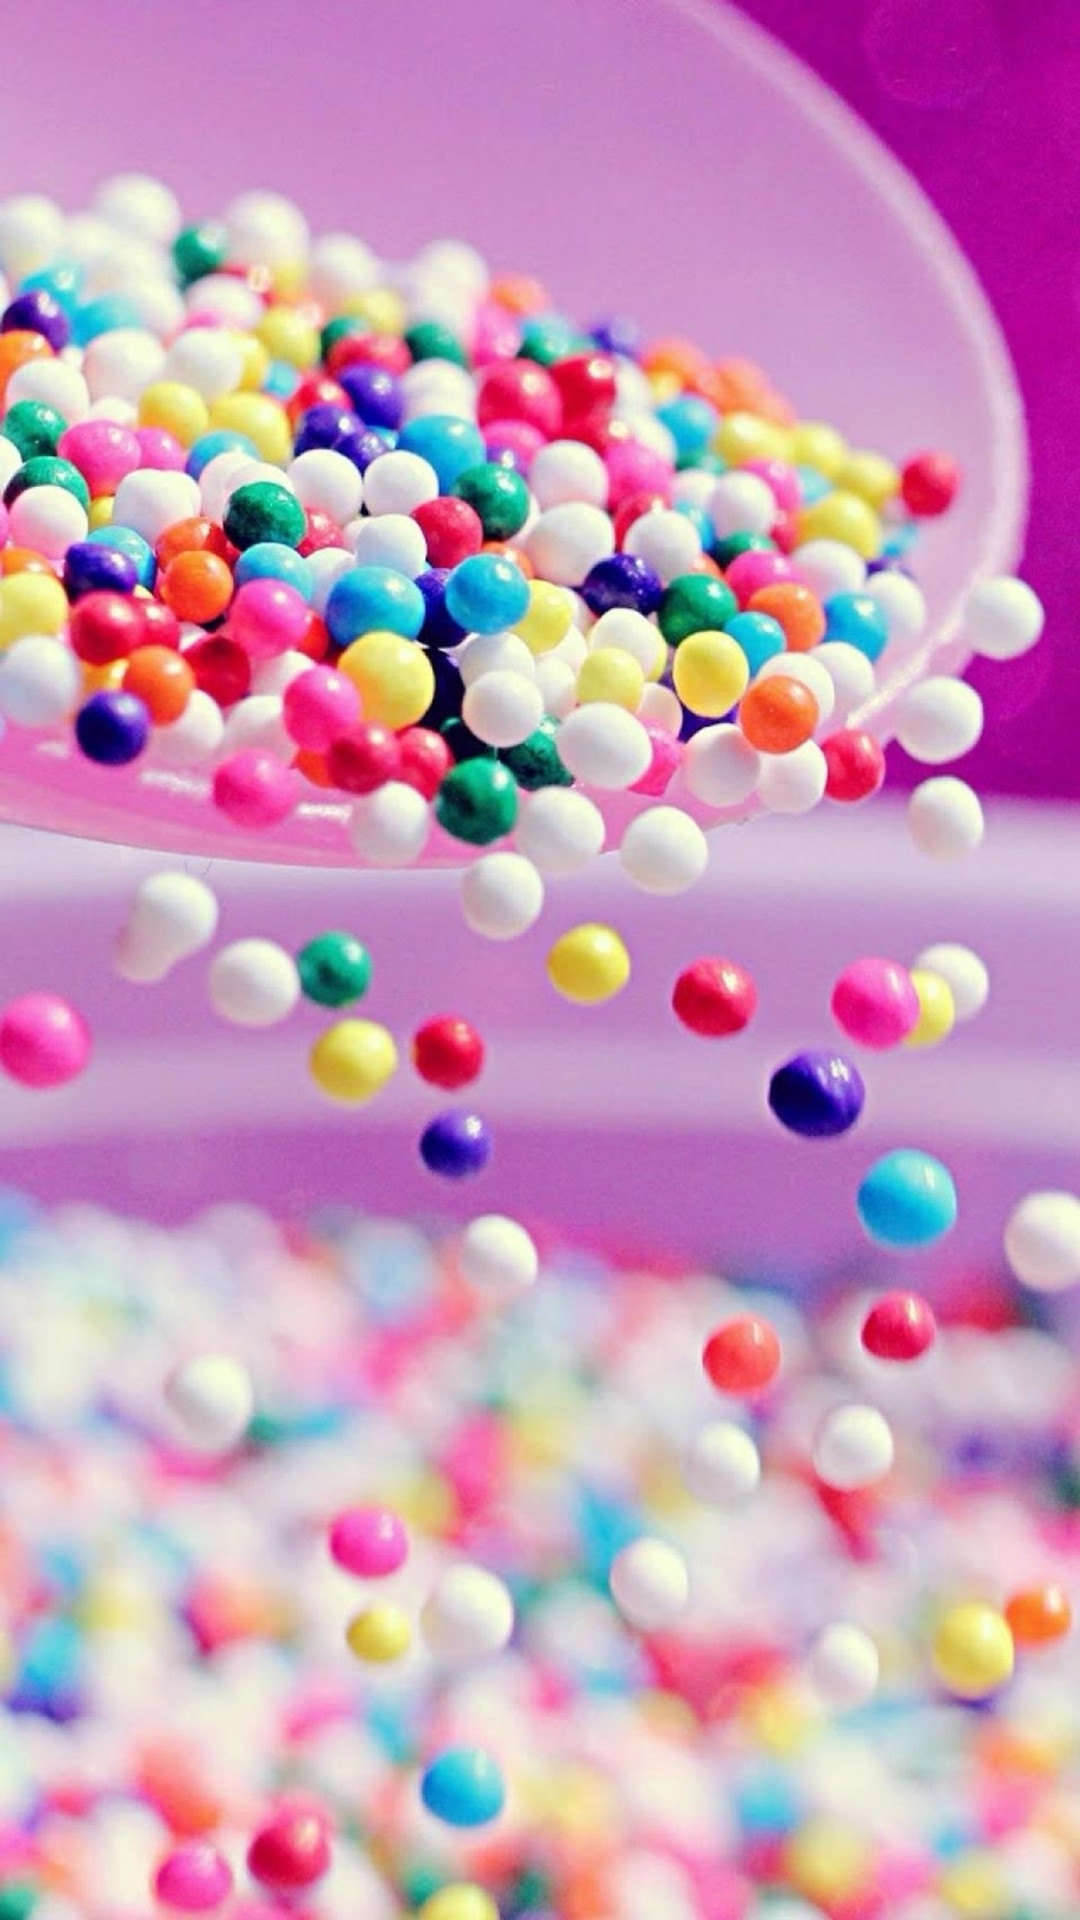 Sweet Colorful Candy Ball Shaking From Bowl iPhone wallpaper